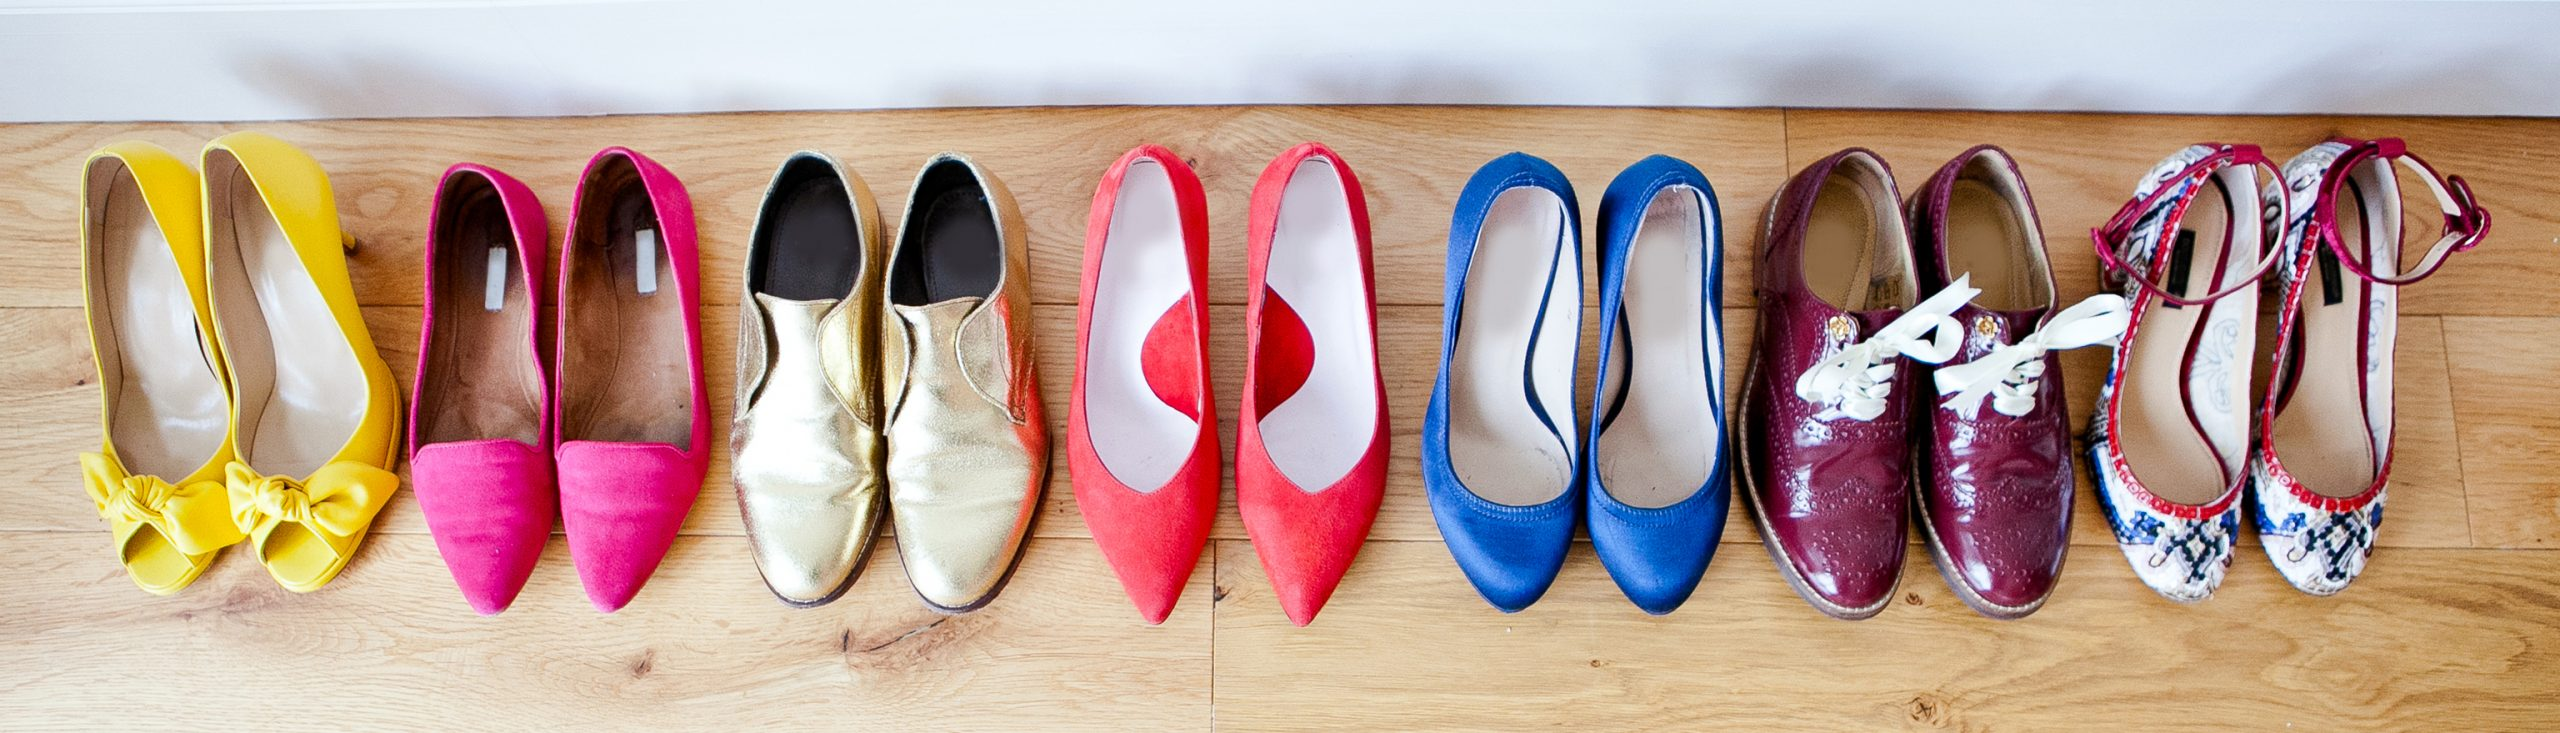 How to start a shoe brand course